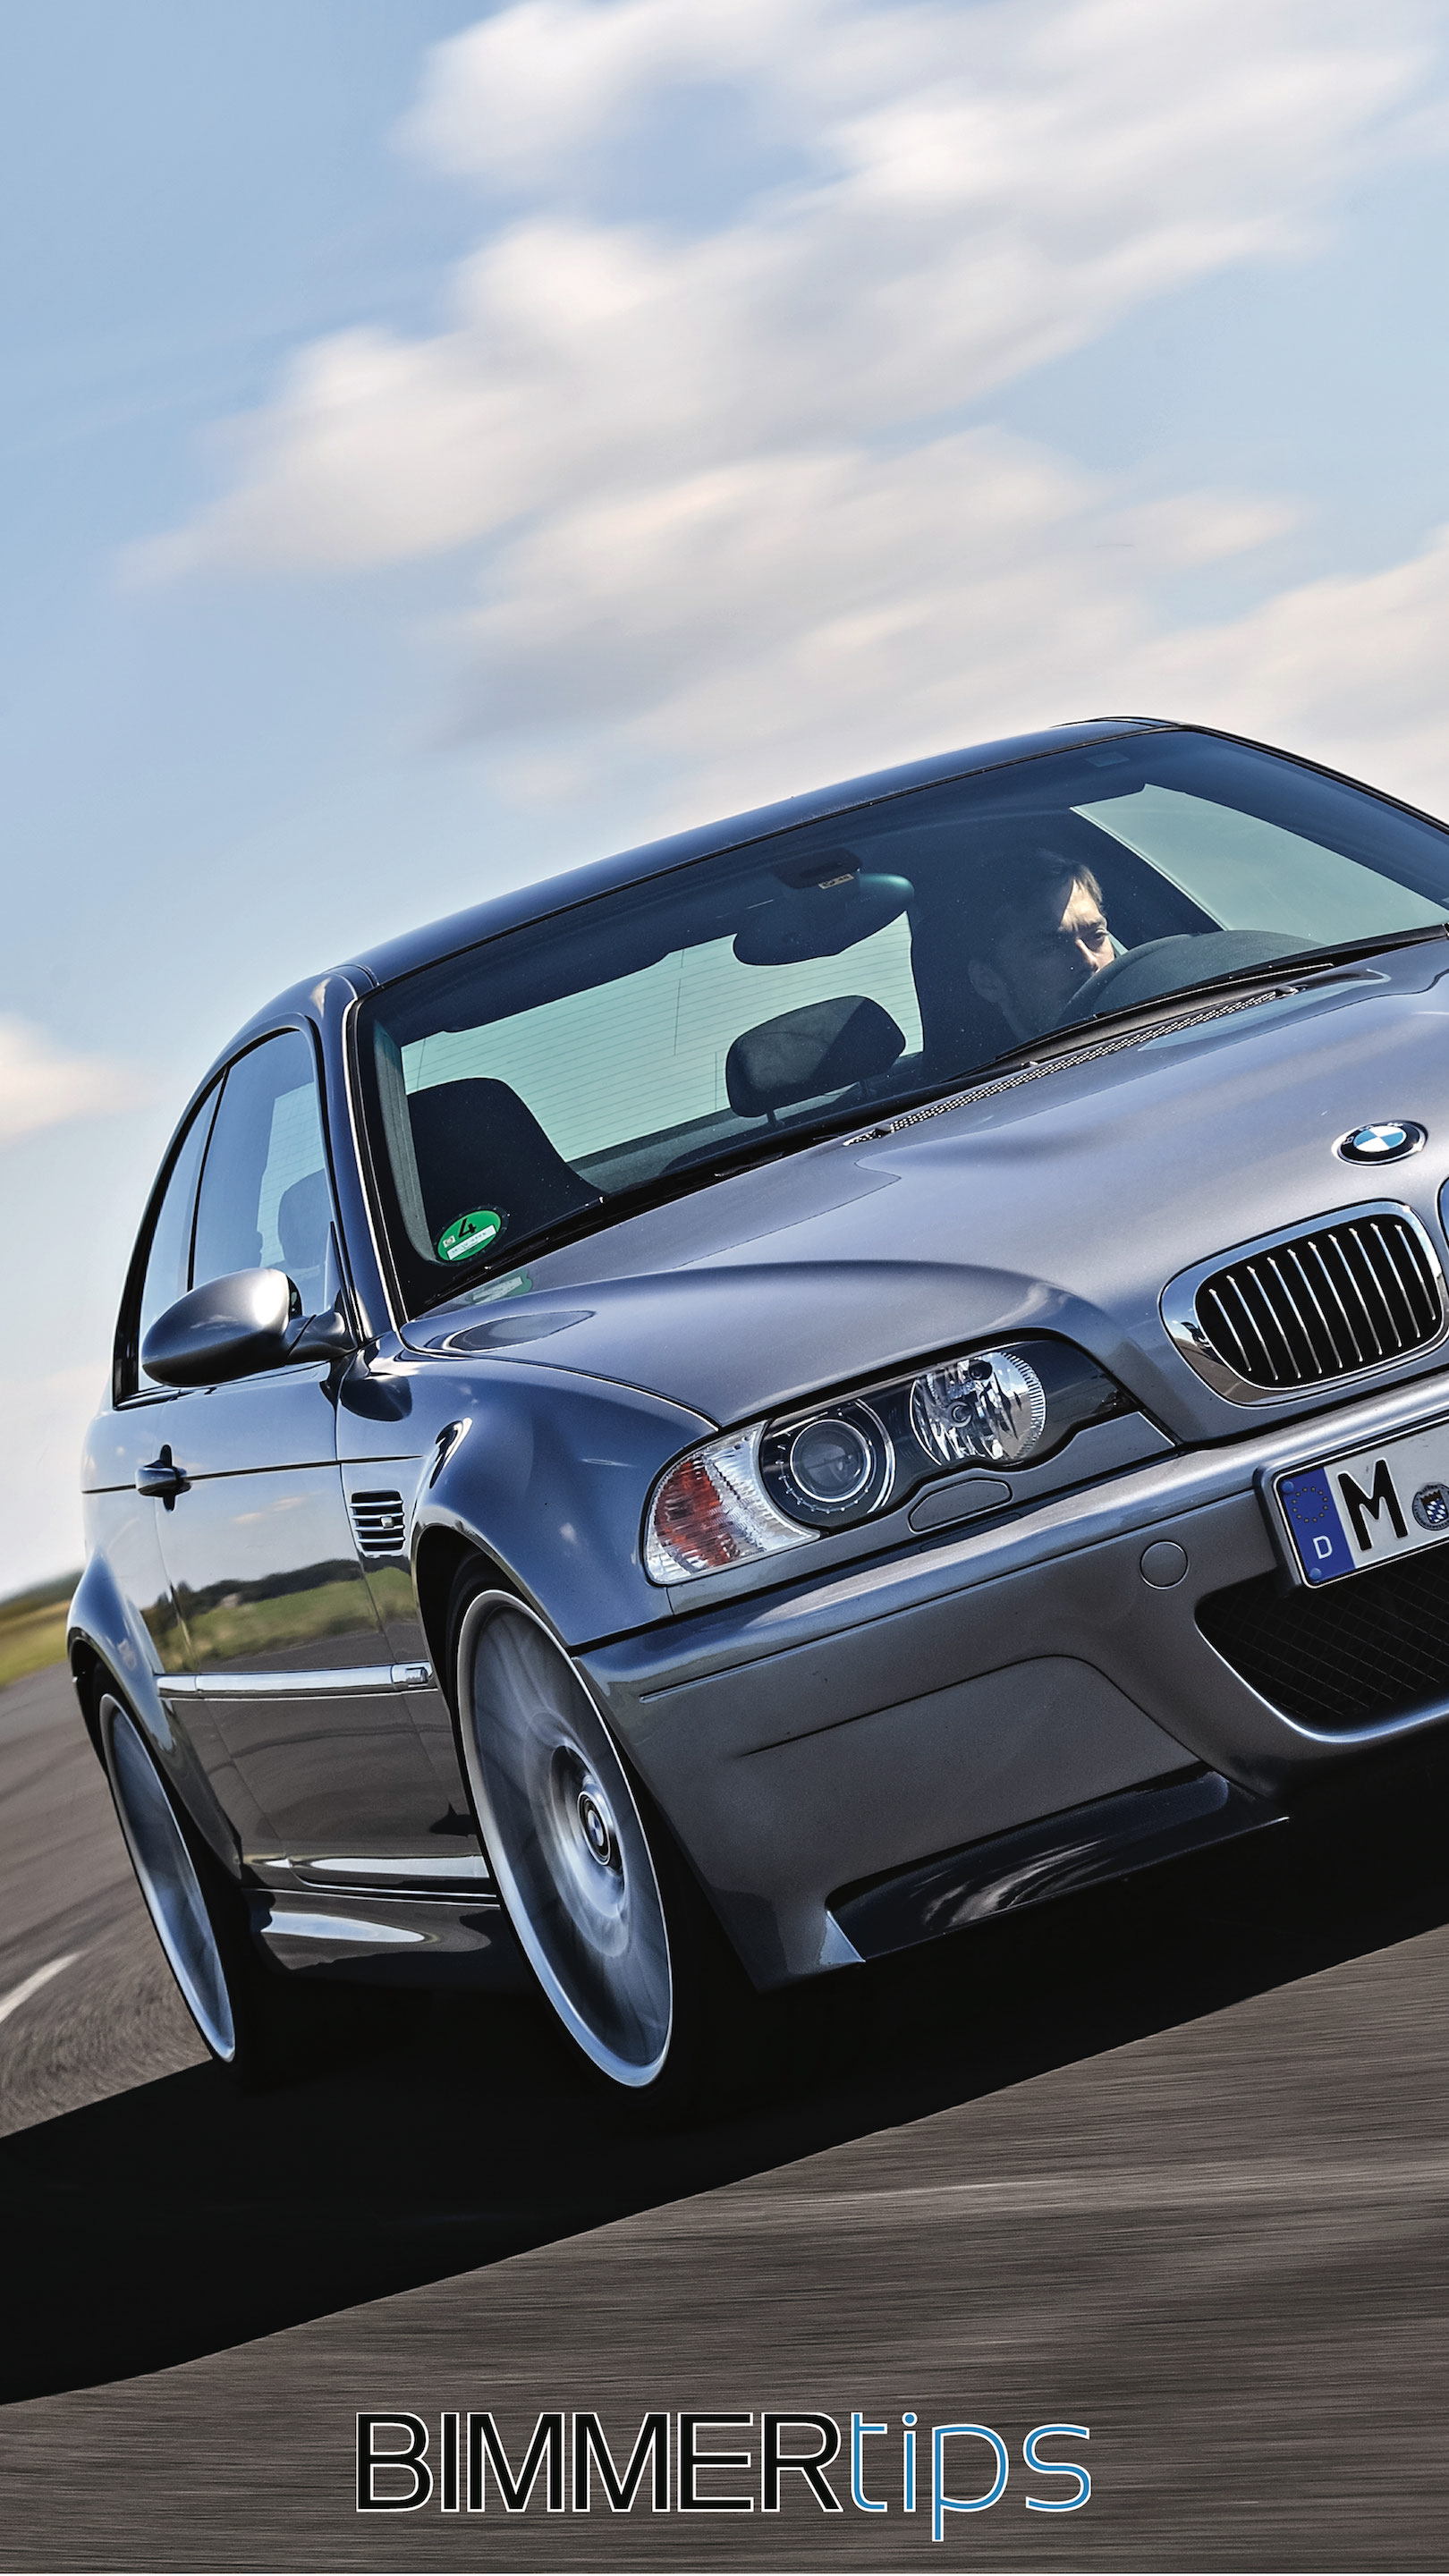 Bmw wallpapers for iphone and android smartphones bimmertips bmw e46 voltagebd Gallery